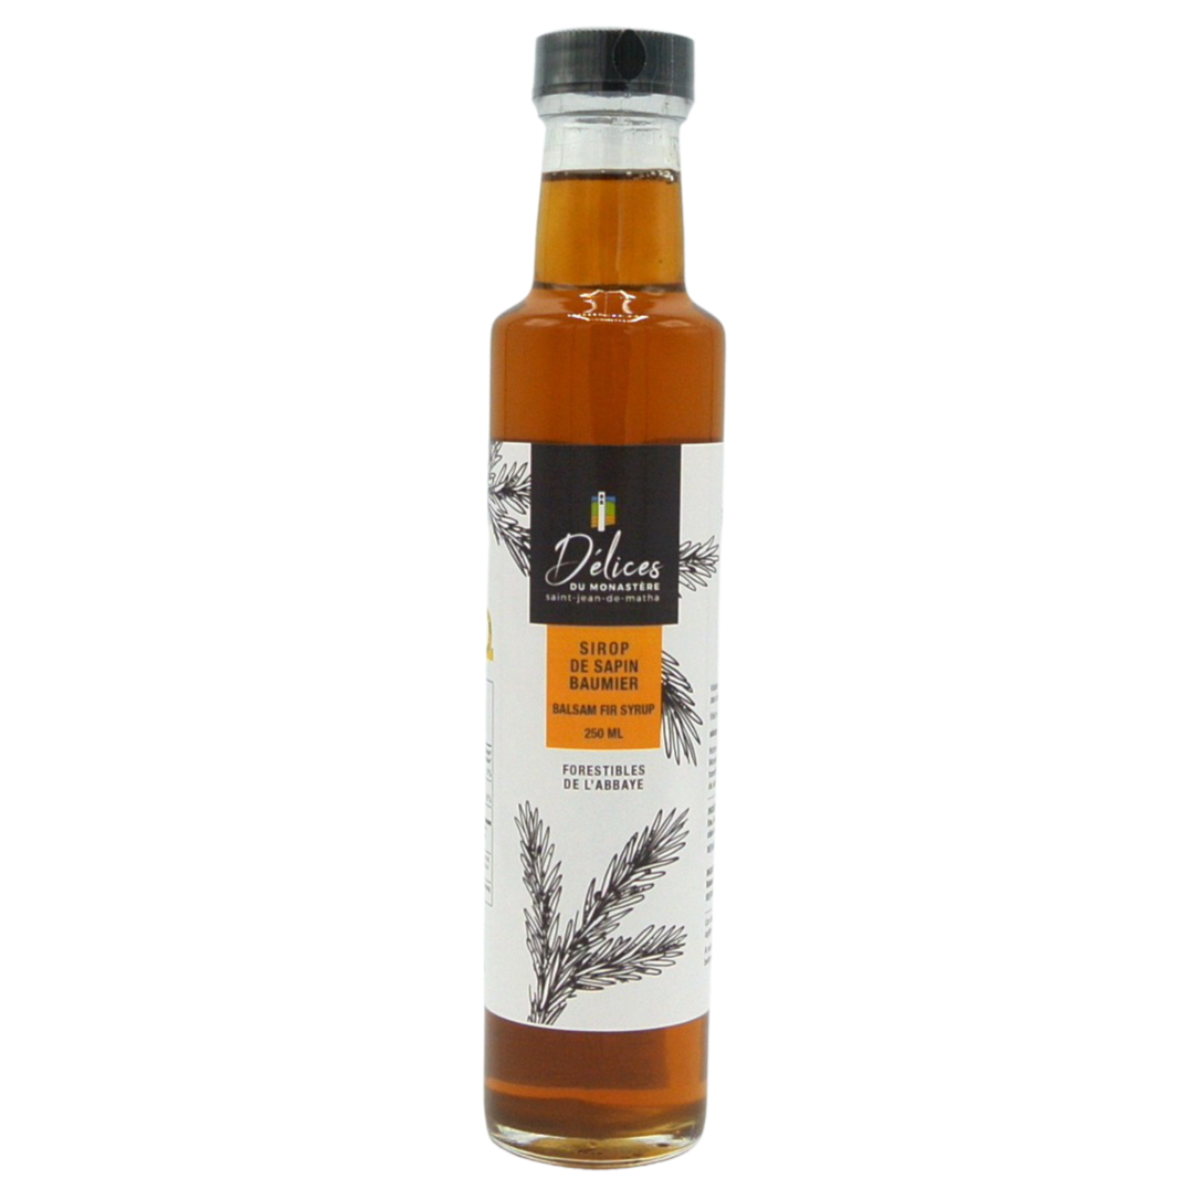 Sirop de sapin 250 ml